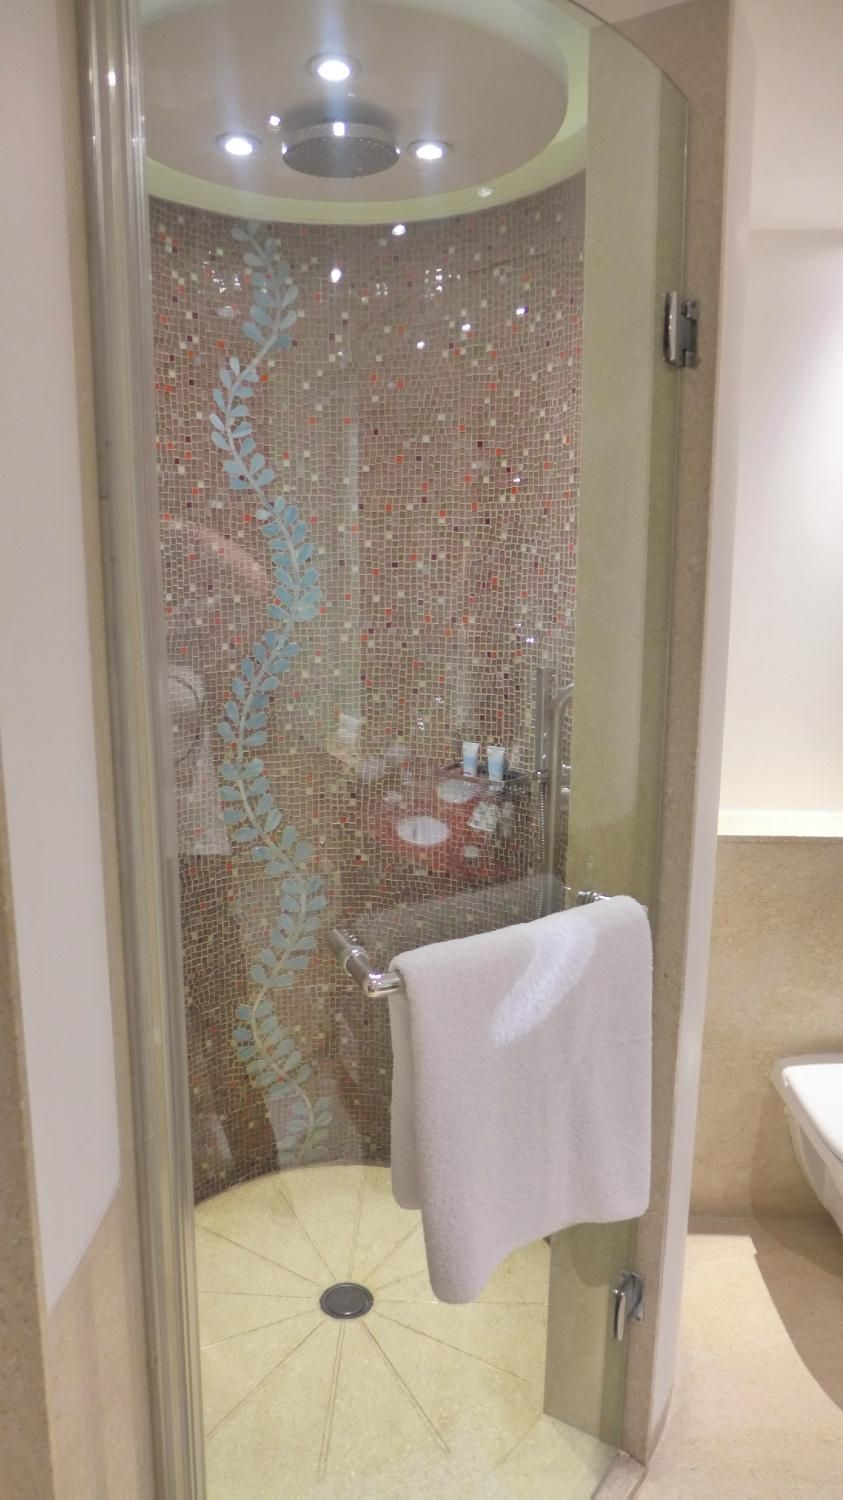 Itc Maurya New Delhi New Delhi Circular Shower Cubicle With